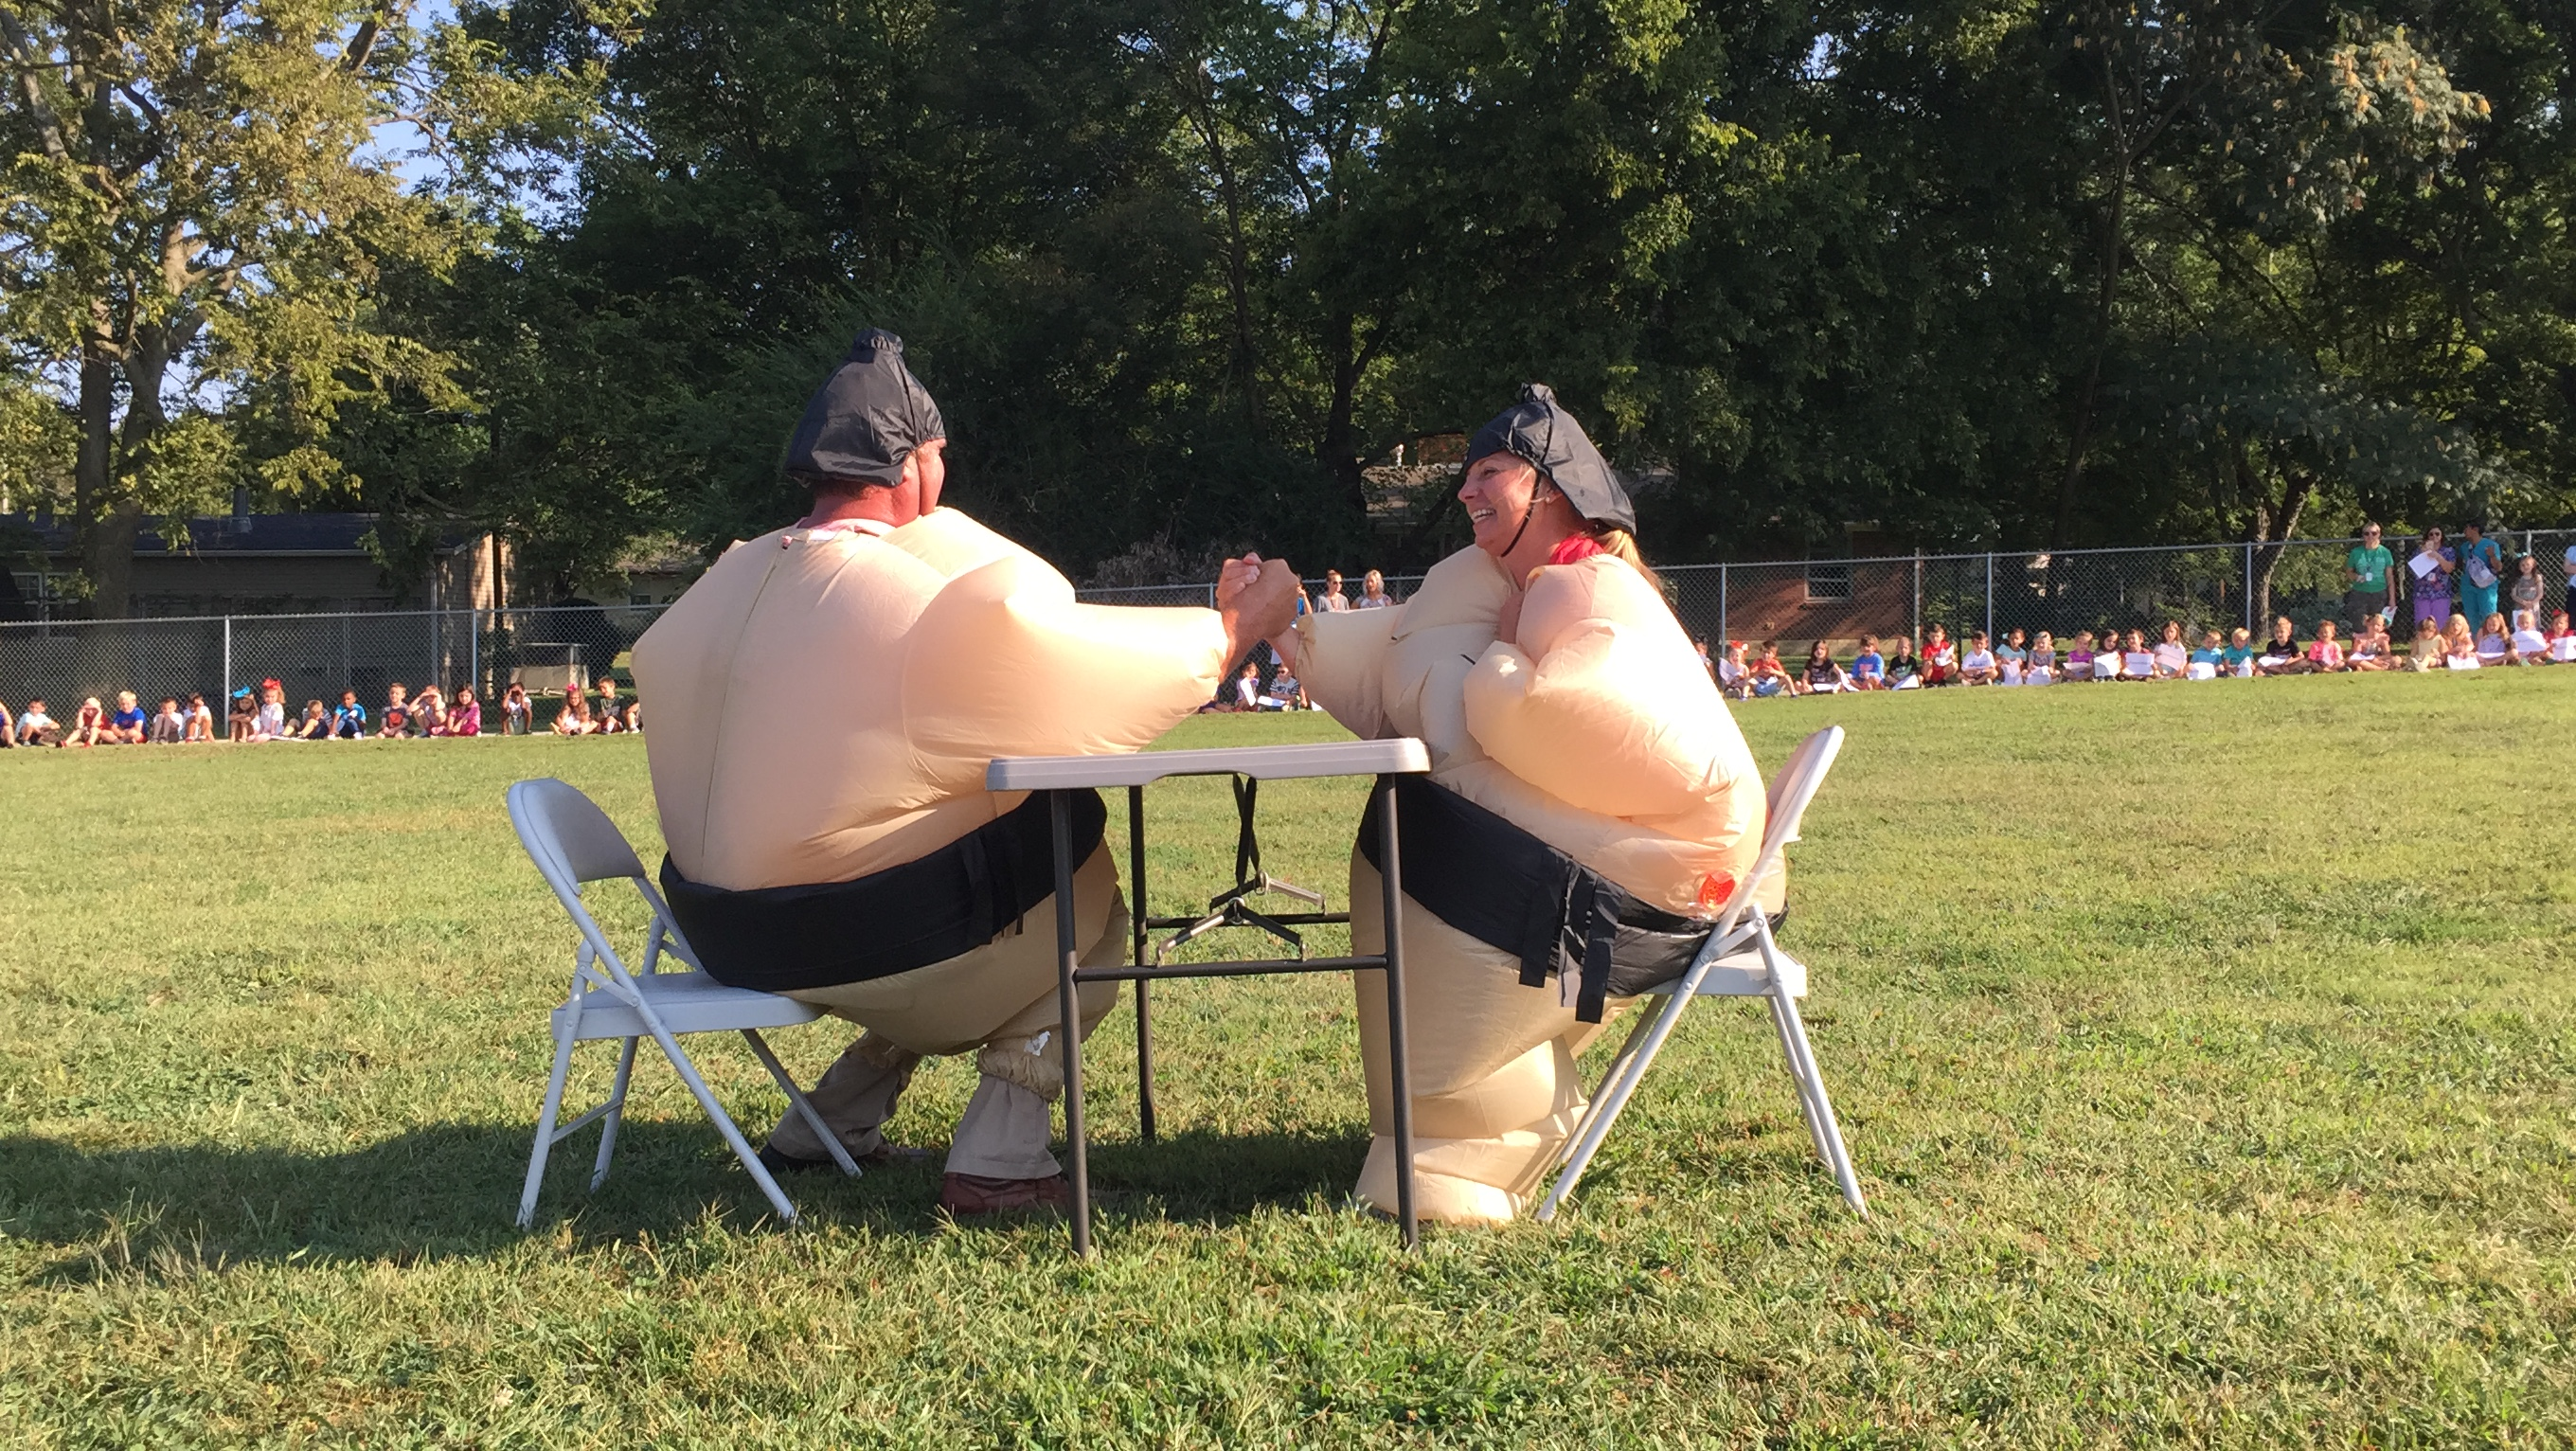 Mr. Taylor and Mrs. Holleman in Sumo suits arm wrestling